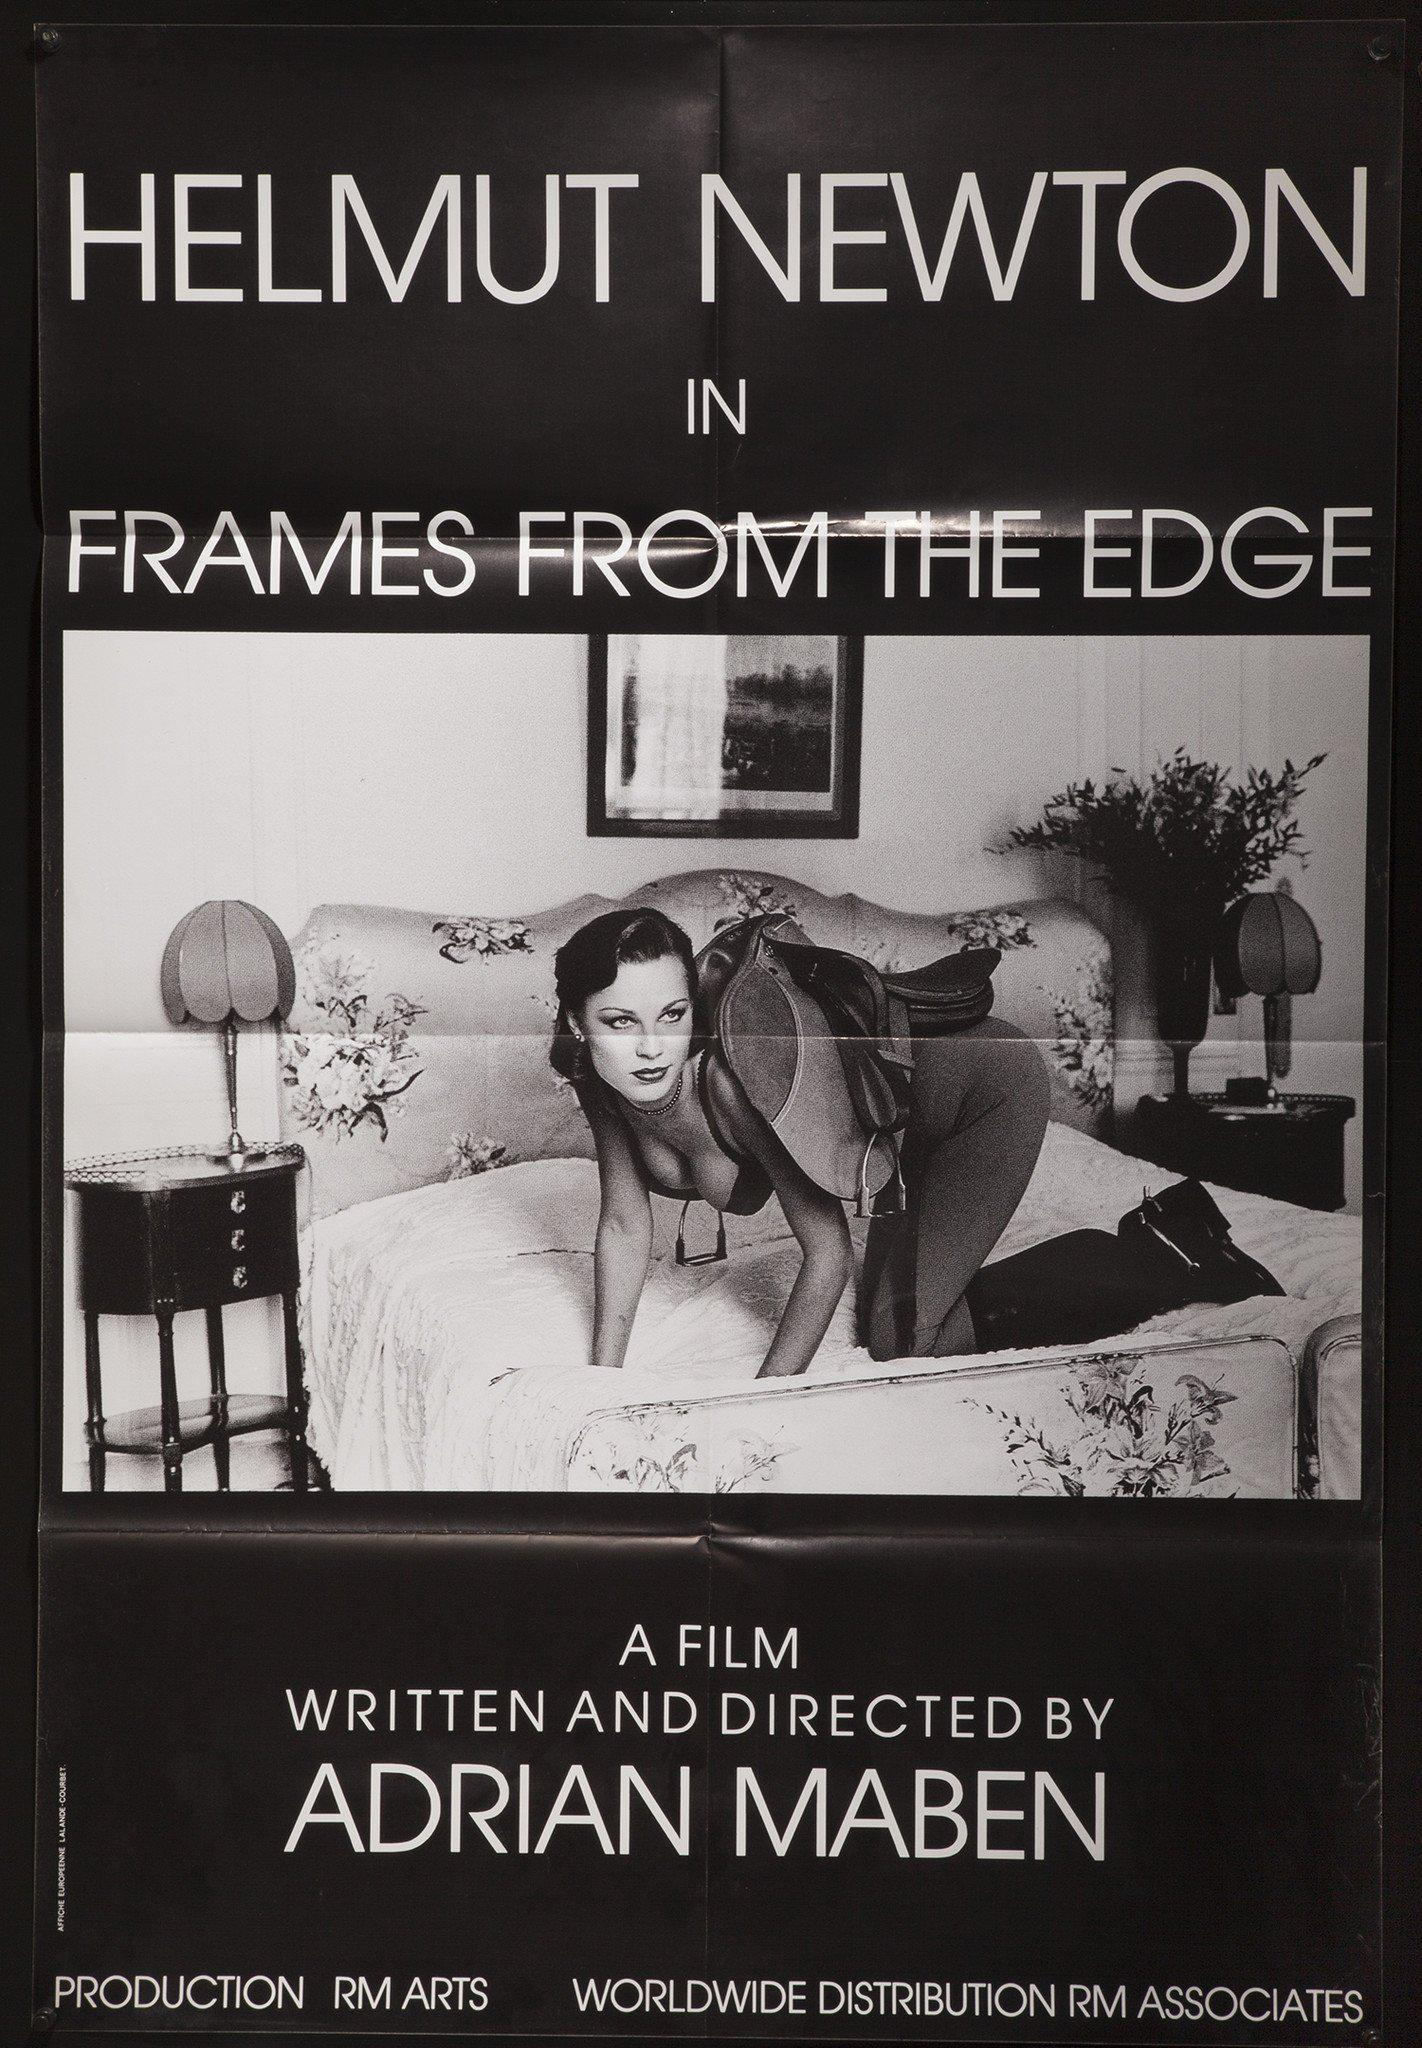 Helmut Newton Frames From The Edge French medium (31x47) Original Vintage Movie Poster